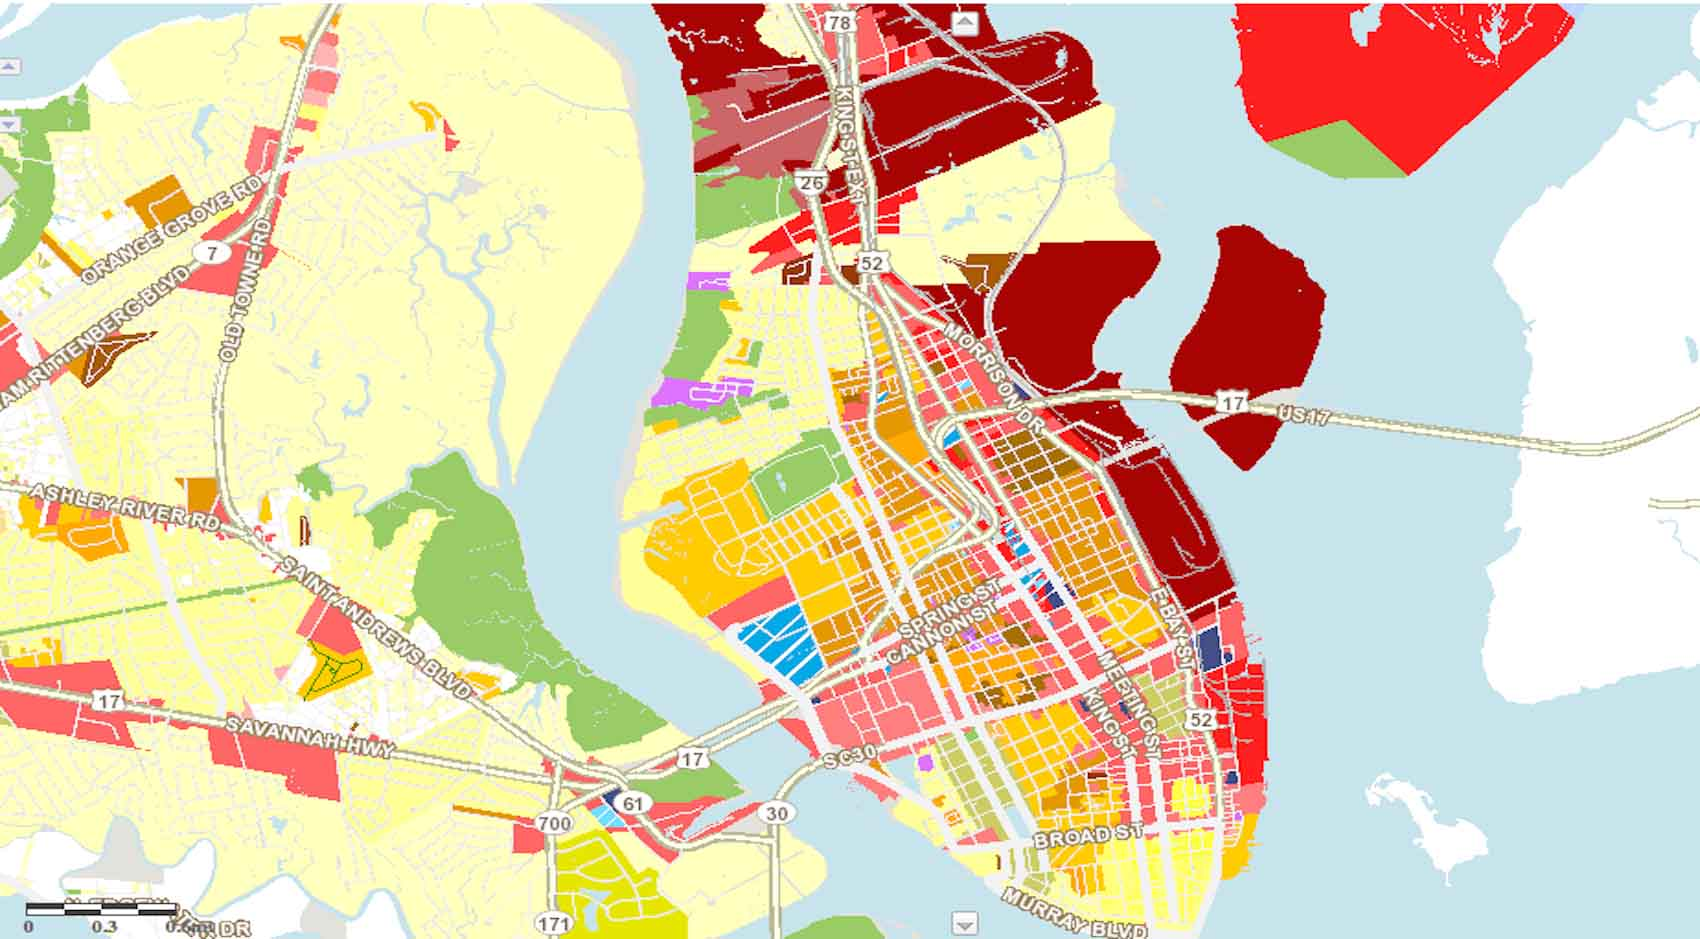 zoning map of Charleston